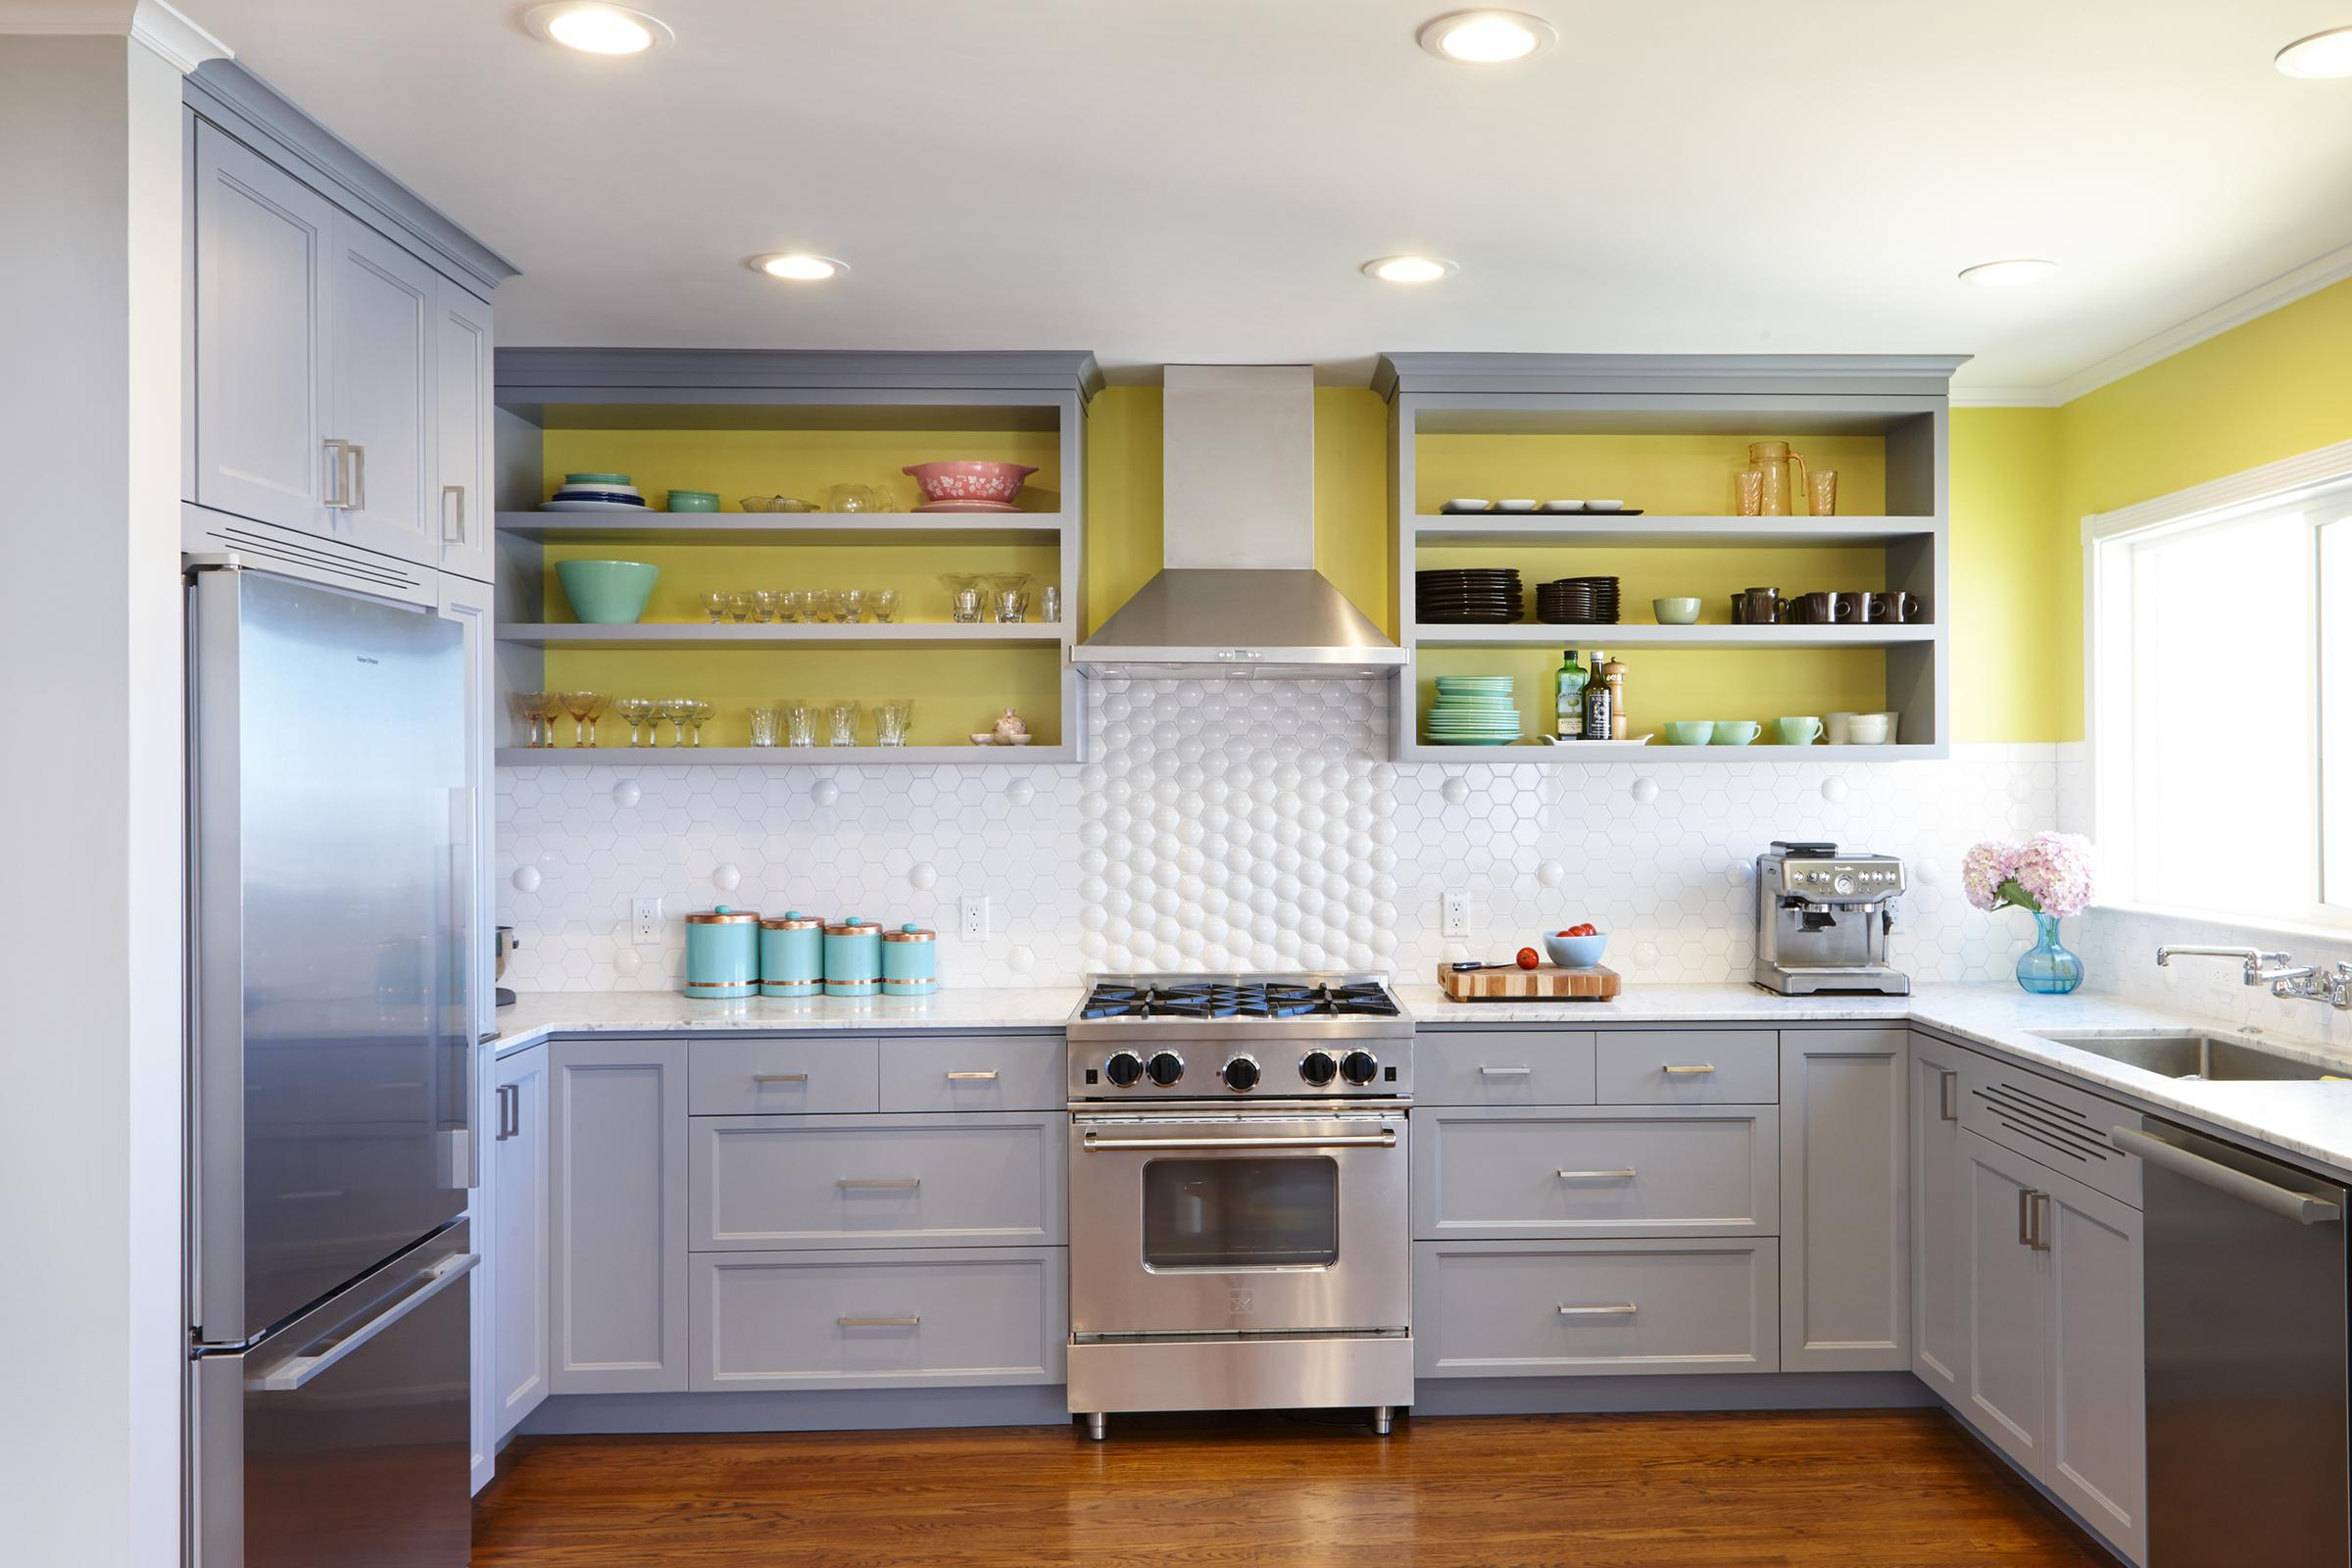 Avoid a Do-Over: Pick a Kitchen Paint You'll Love